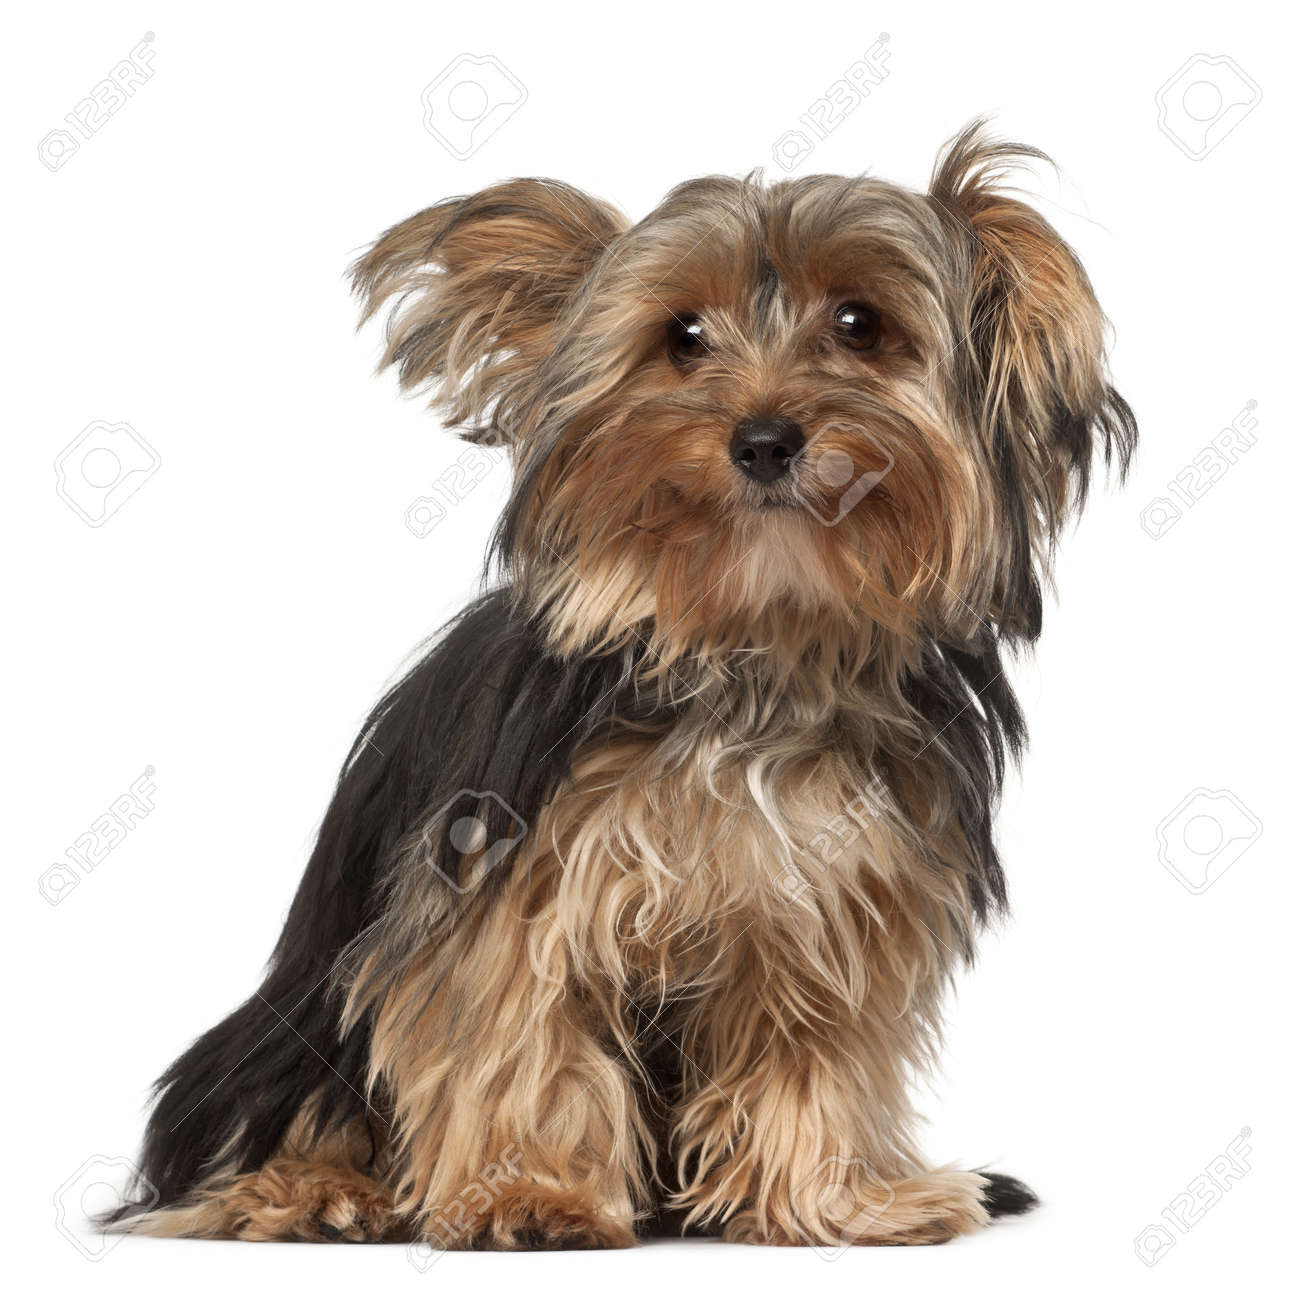 Yorkshire Terrier 8 Months Old Sitting In Front Of White